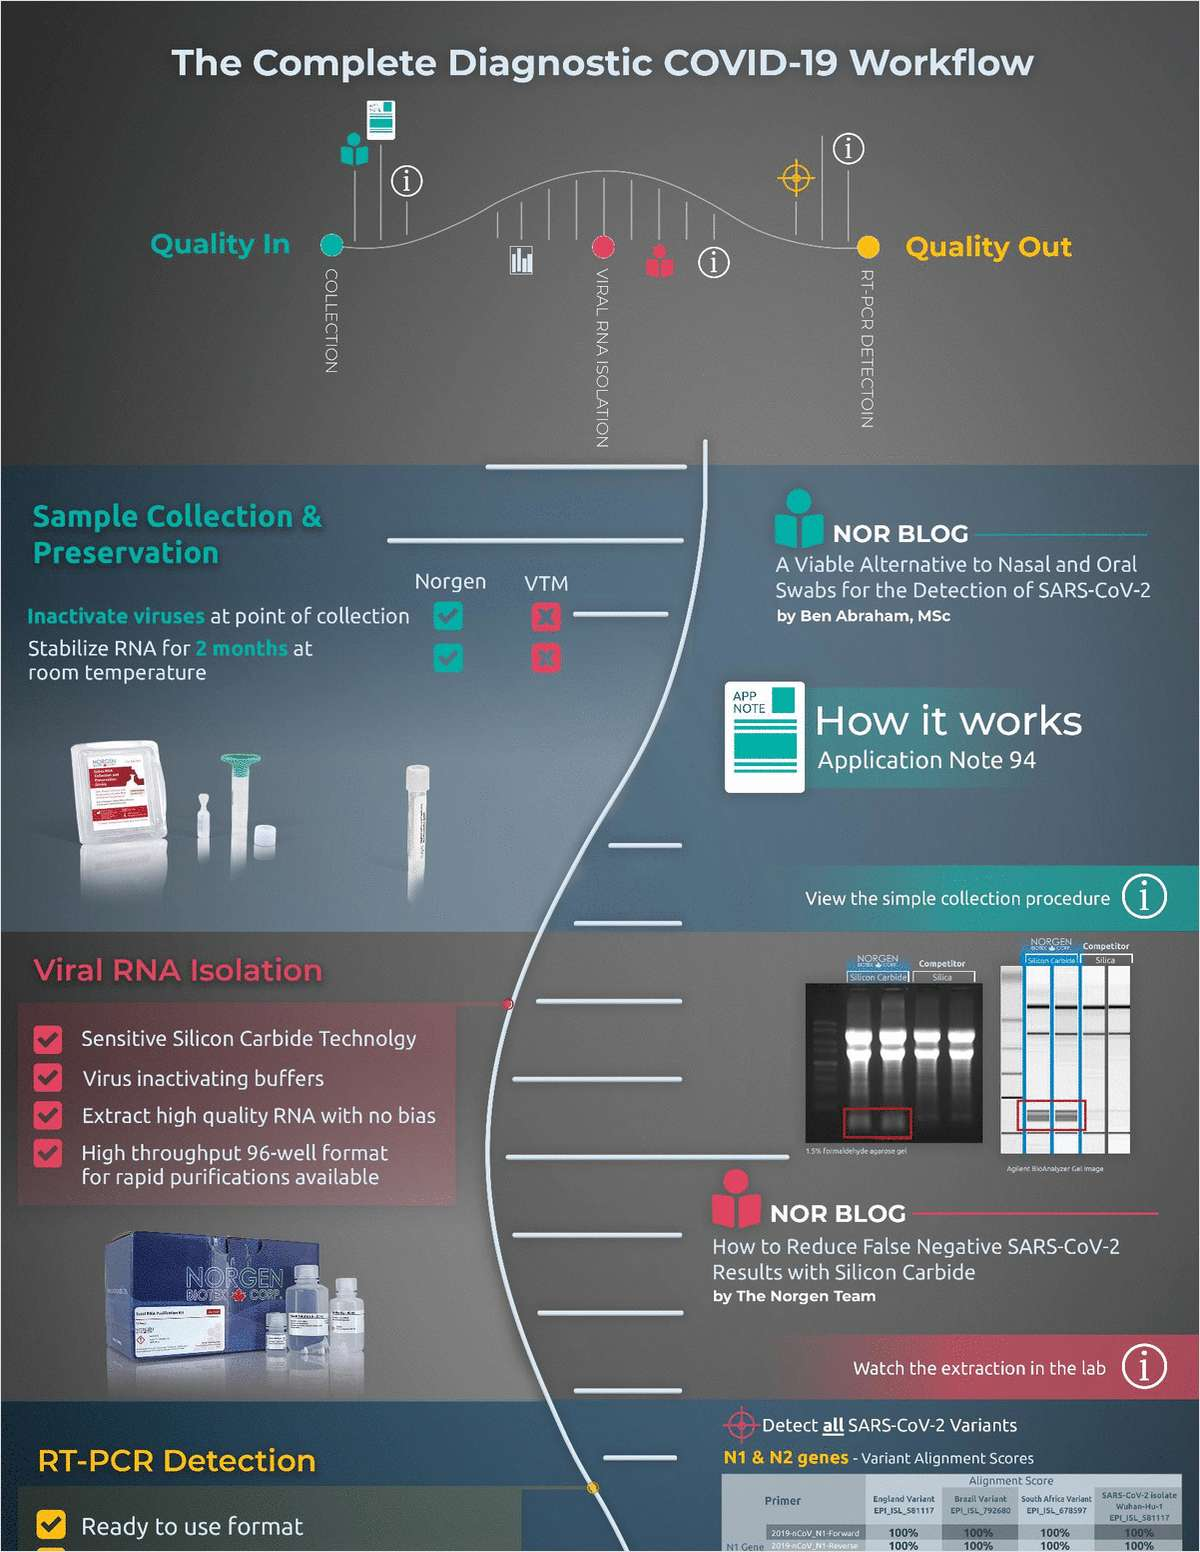 The Complete Diagnostic COVID-19 Workflow Infographic